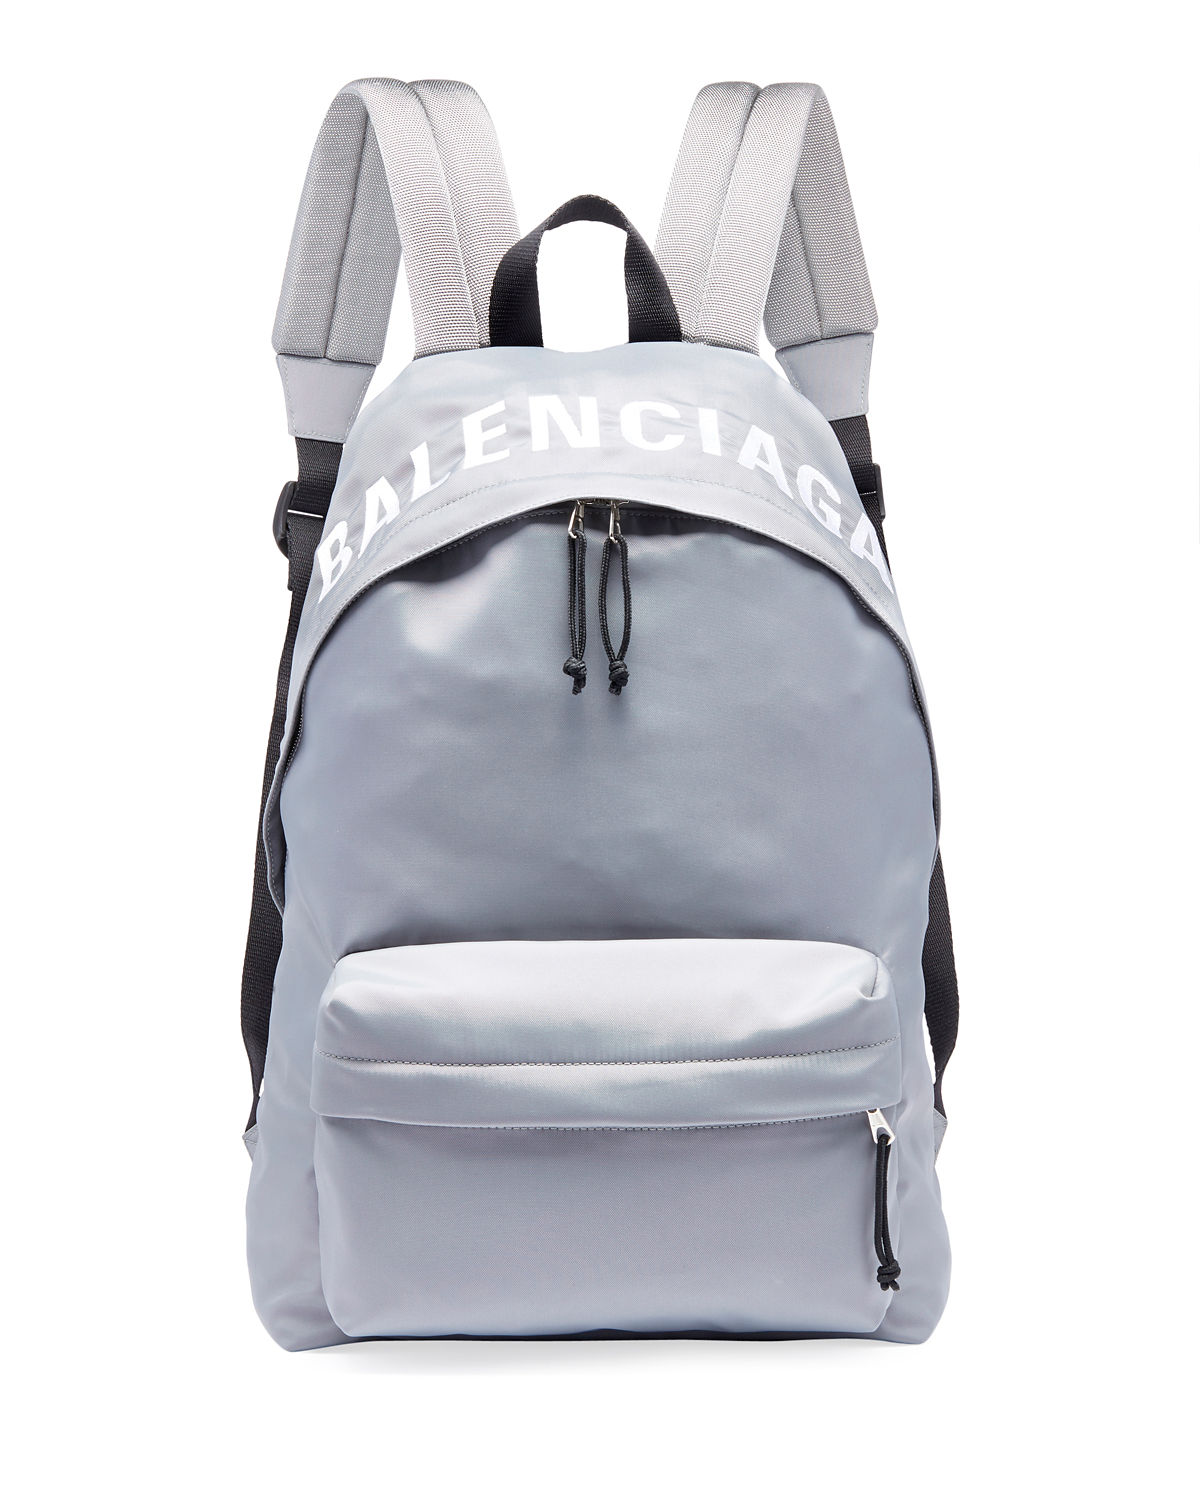 d7eff67ed44816 Double-B Logo Backpack. Balenciaga backpack in canvas with embroidered logo.